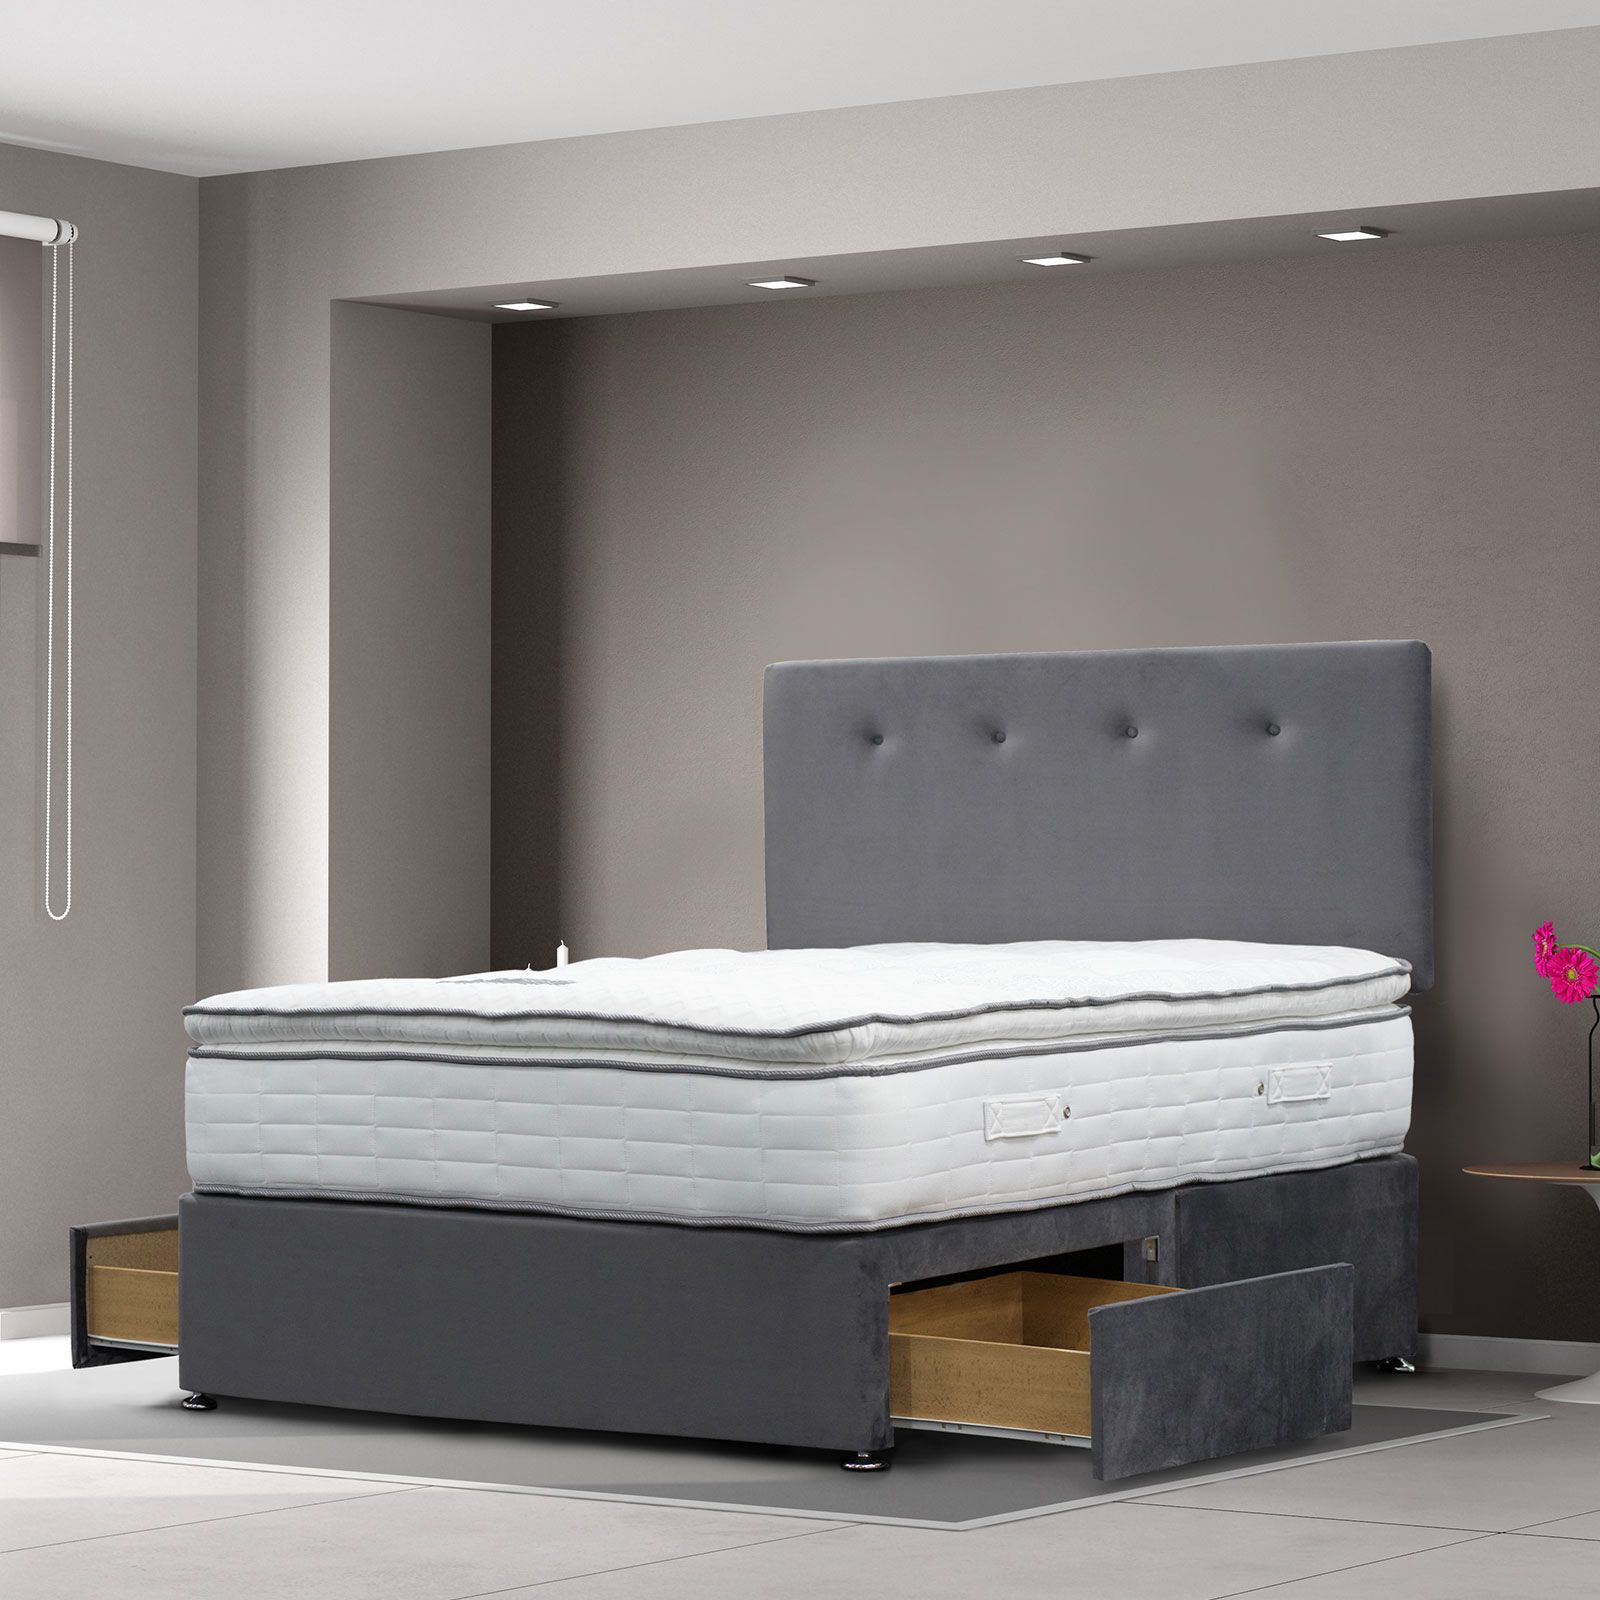 Cagliari divan with 1000 pocket mattress